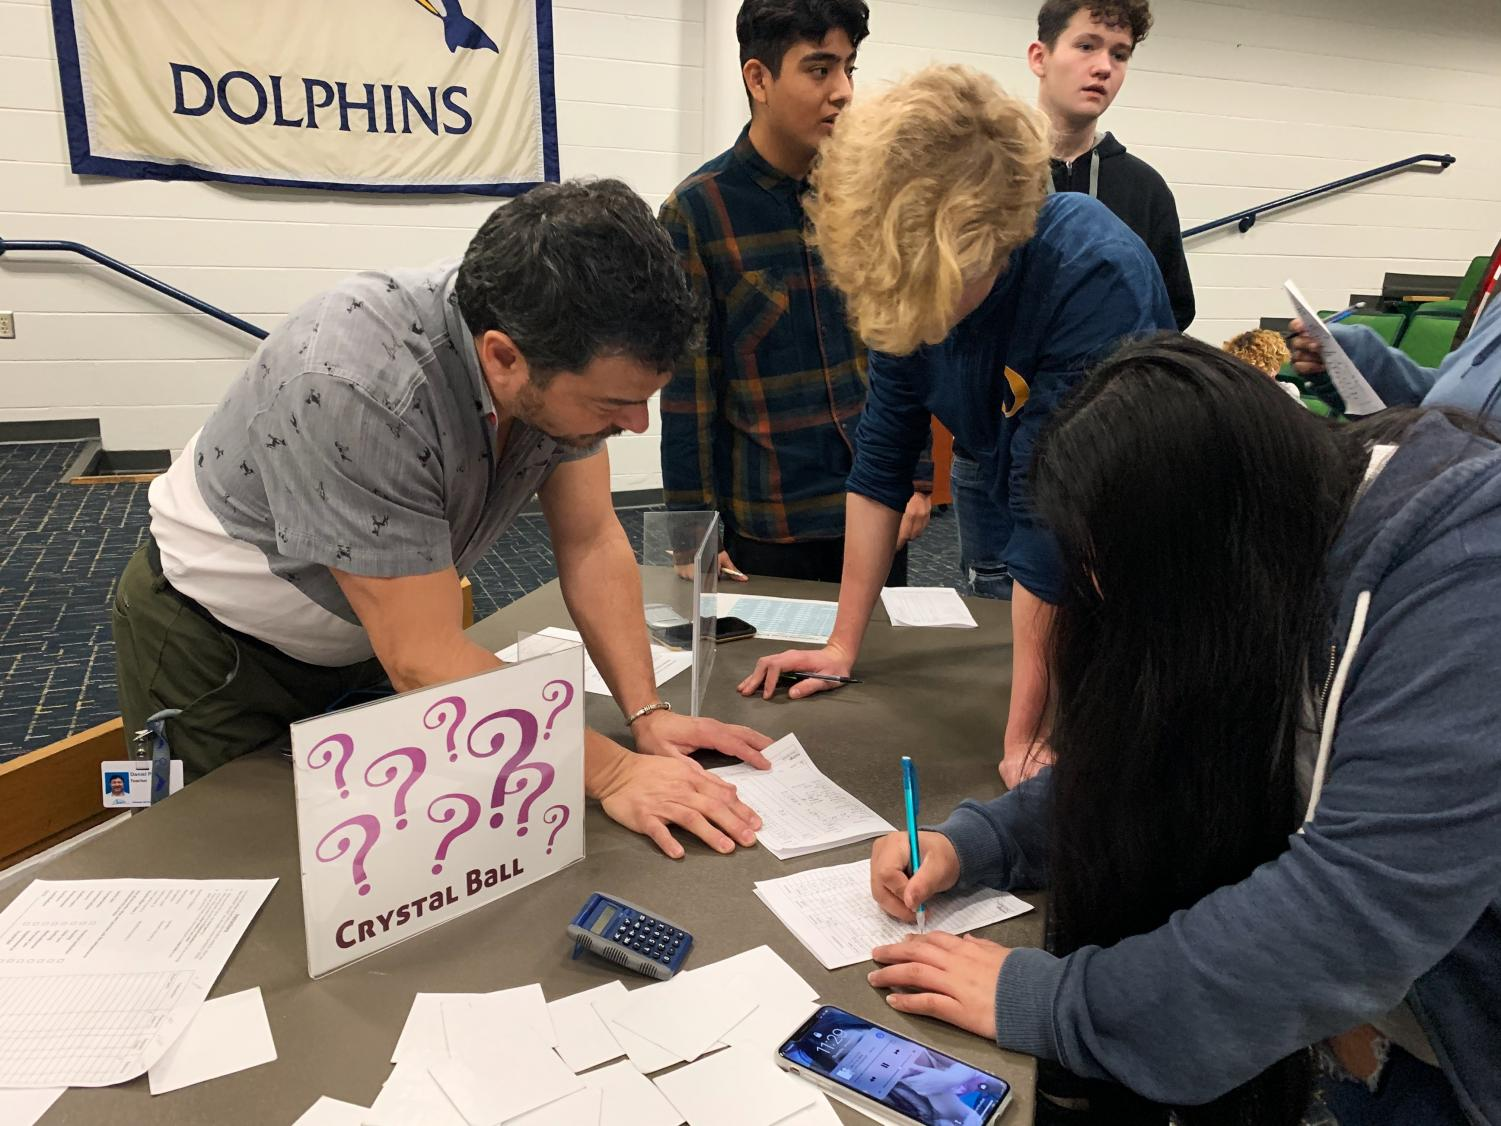 Students fill out their finance chart at one of the stations in the schola on Jan. 23, 2020.